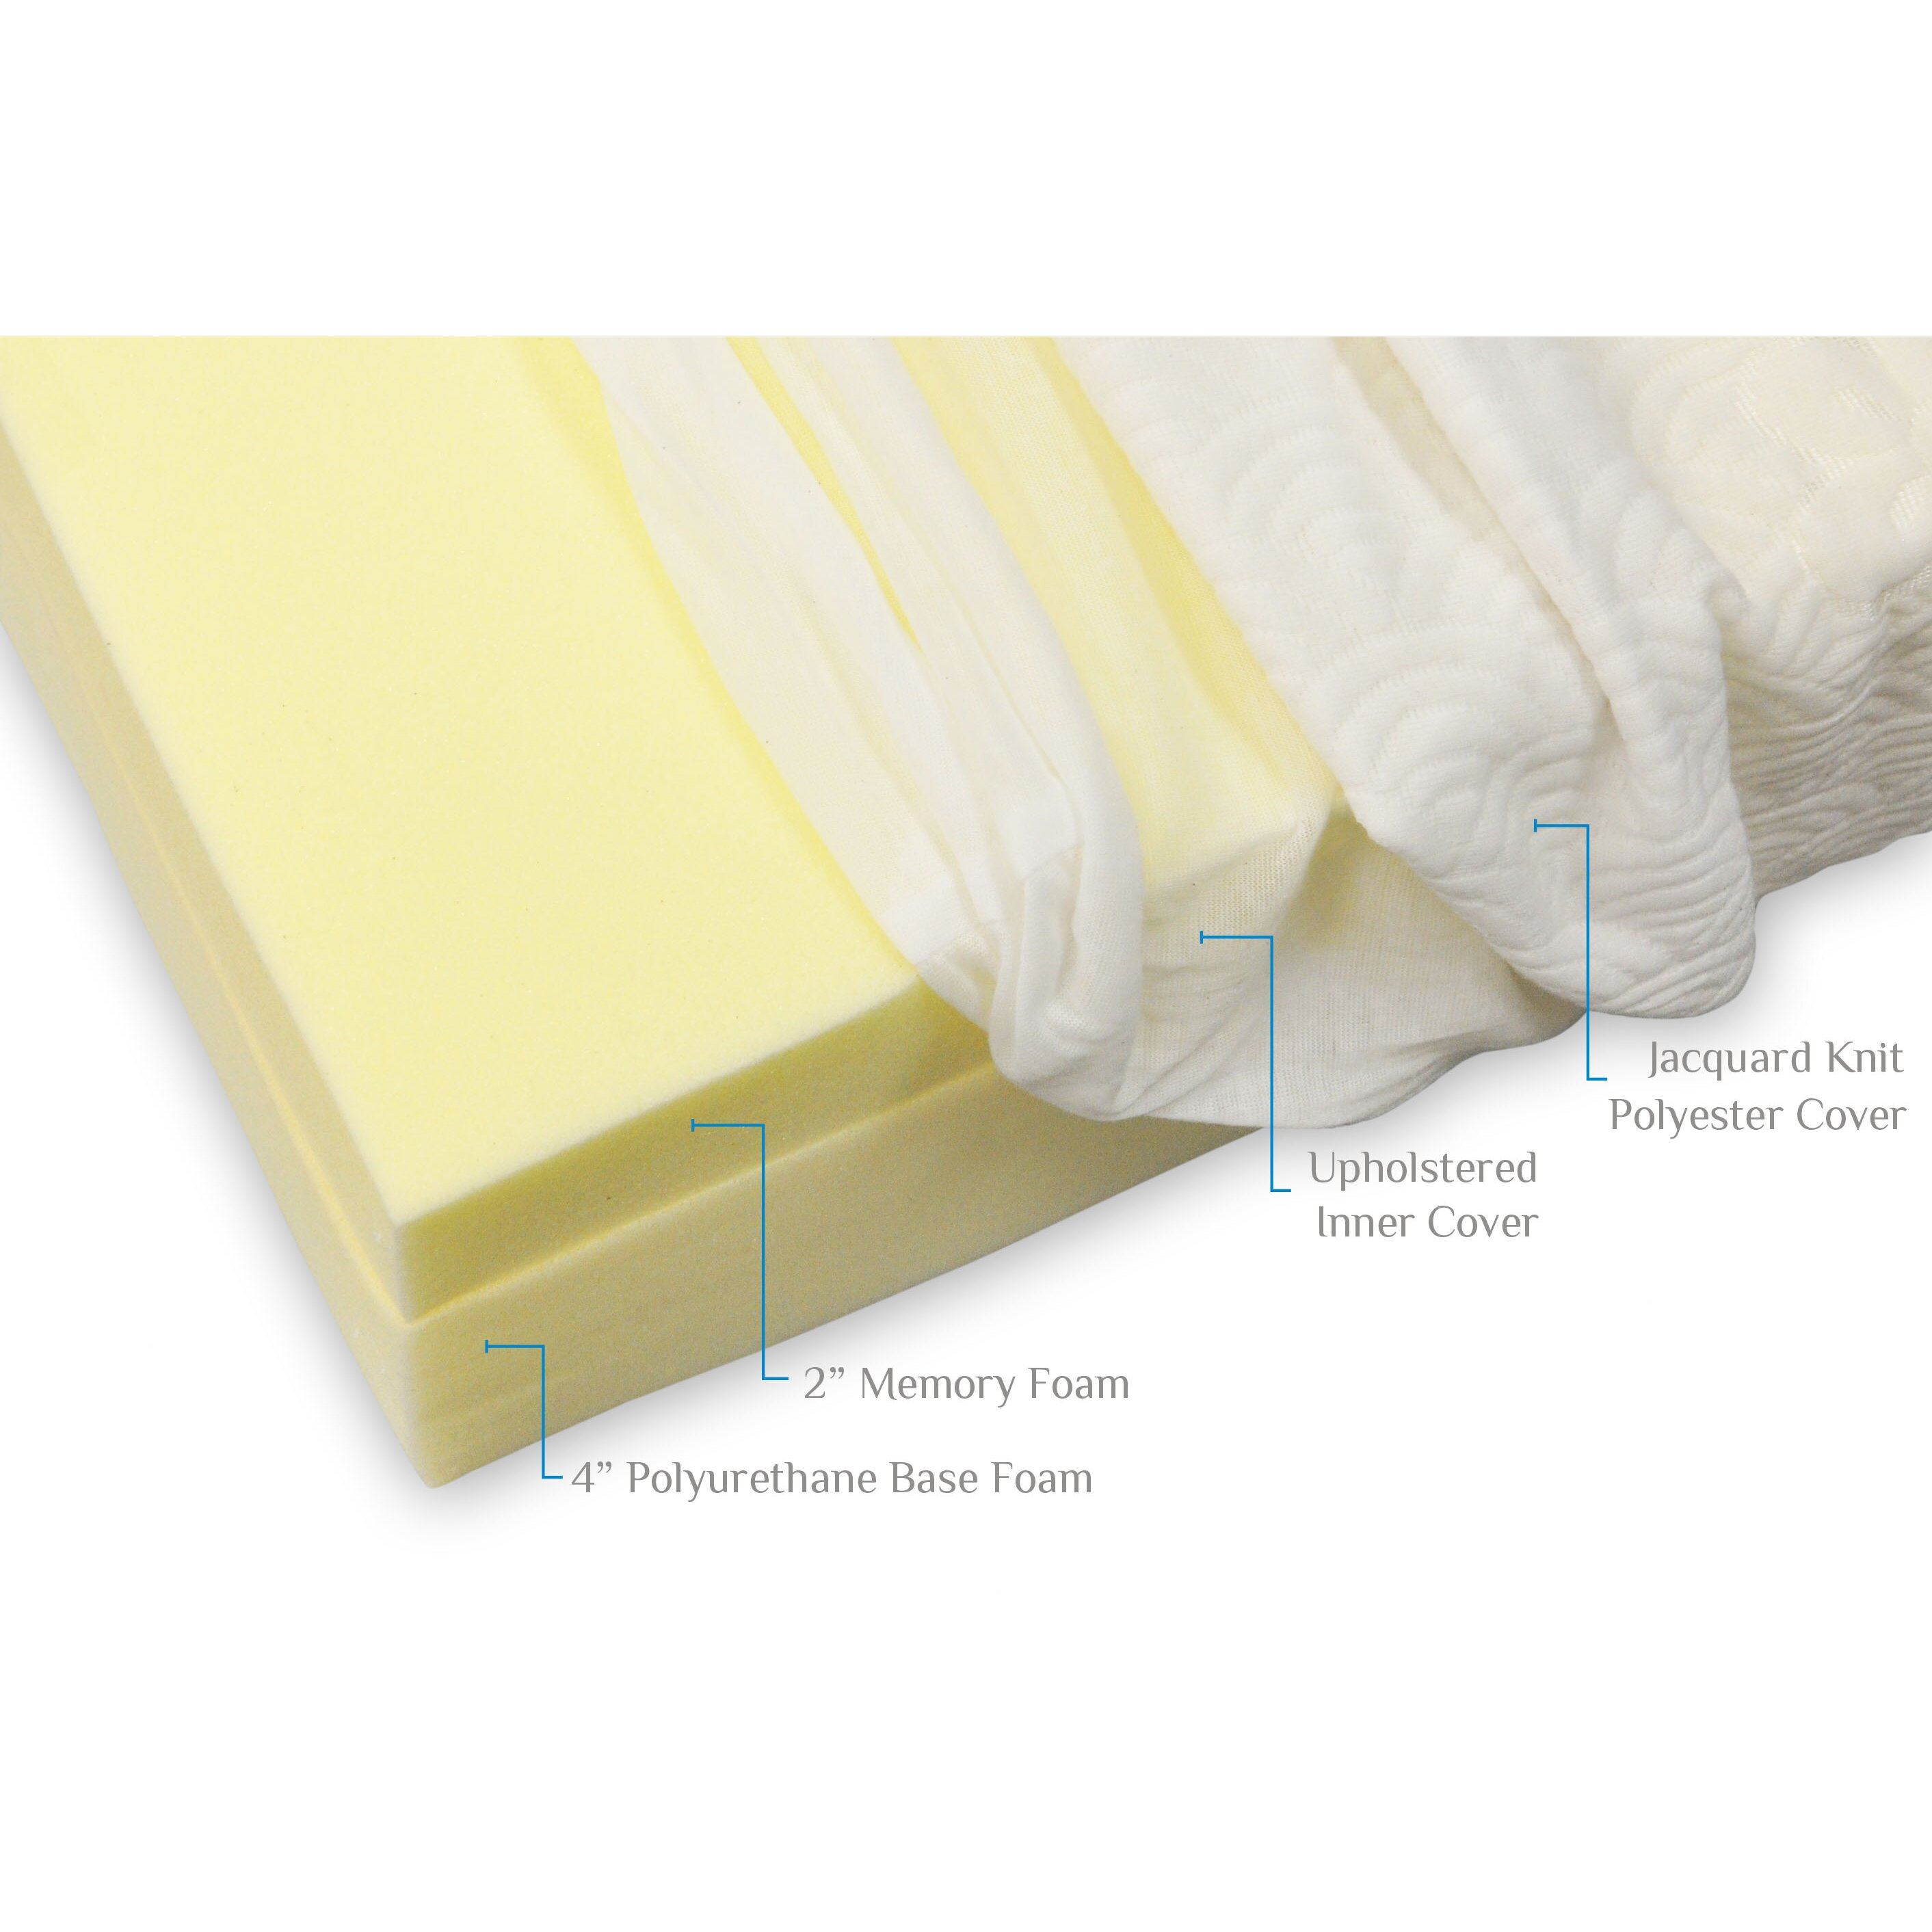 Pragma Bed 6 Memory Foam Mattress Reviews